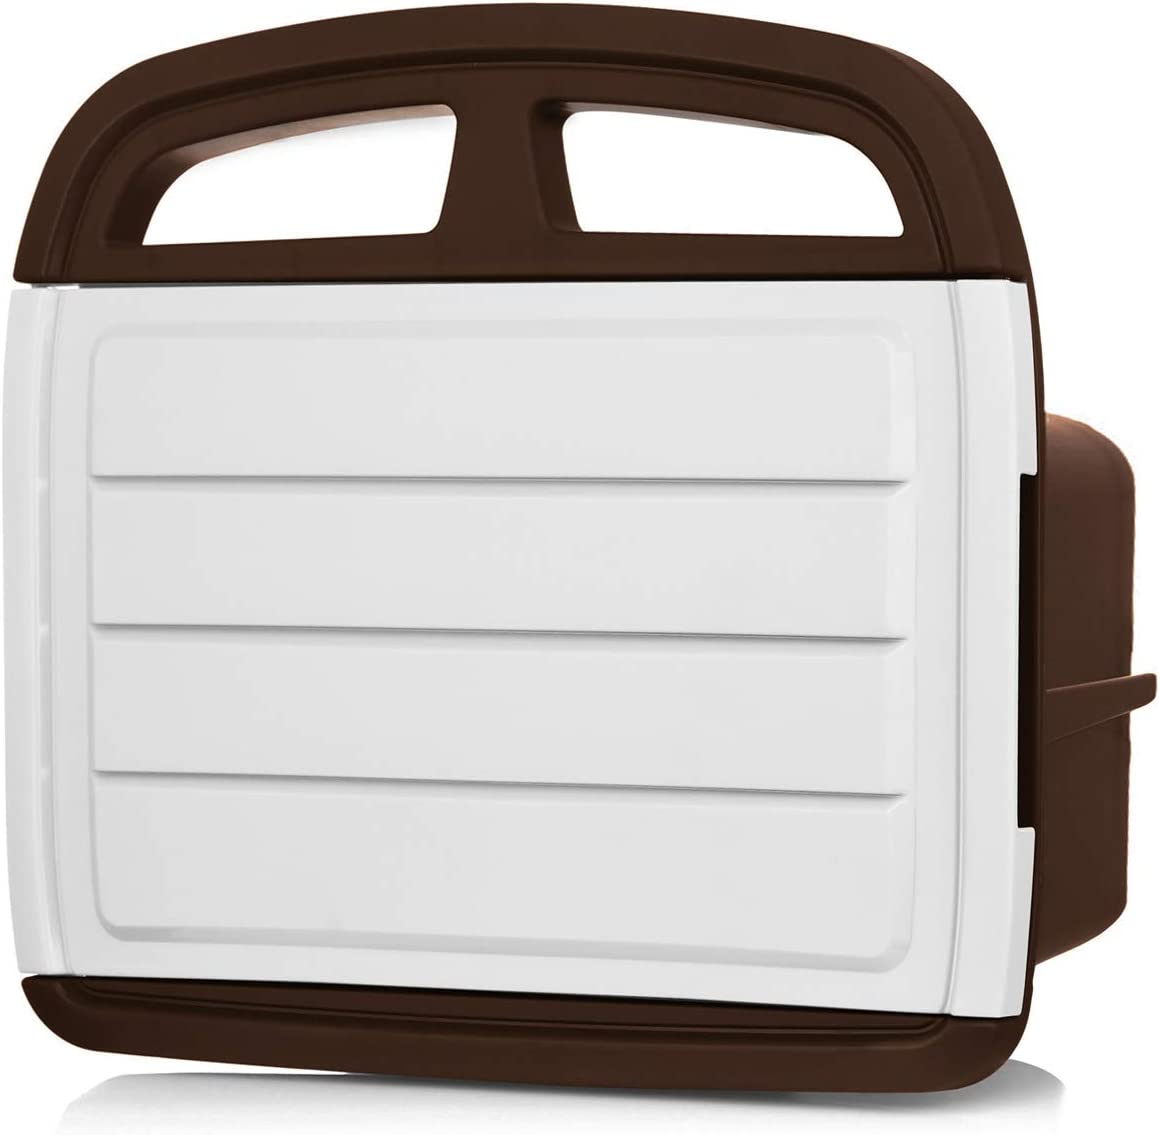 Wall Mount Hose Holder Wall Mount Hose Reel Includes a Compartment for Storing Hose Attachments Wall Mounted Garden Hose Storage Caddy Brown